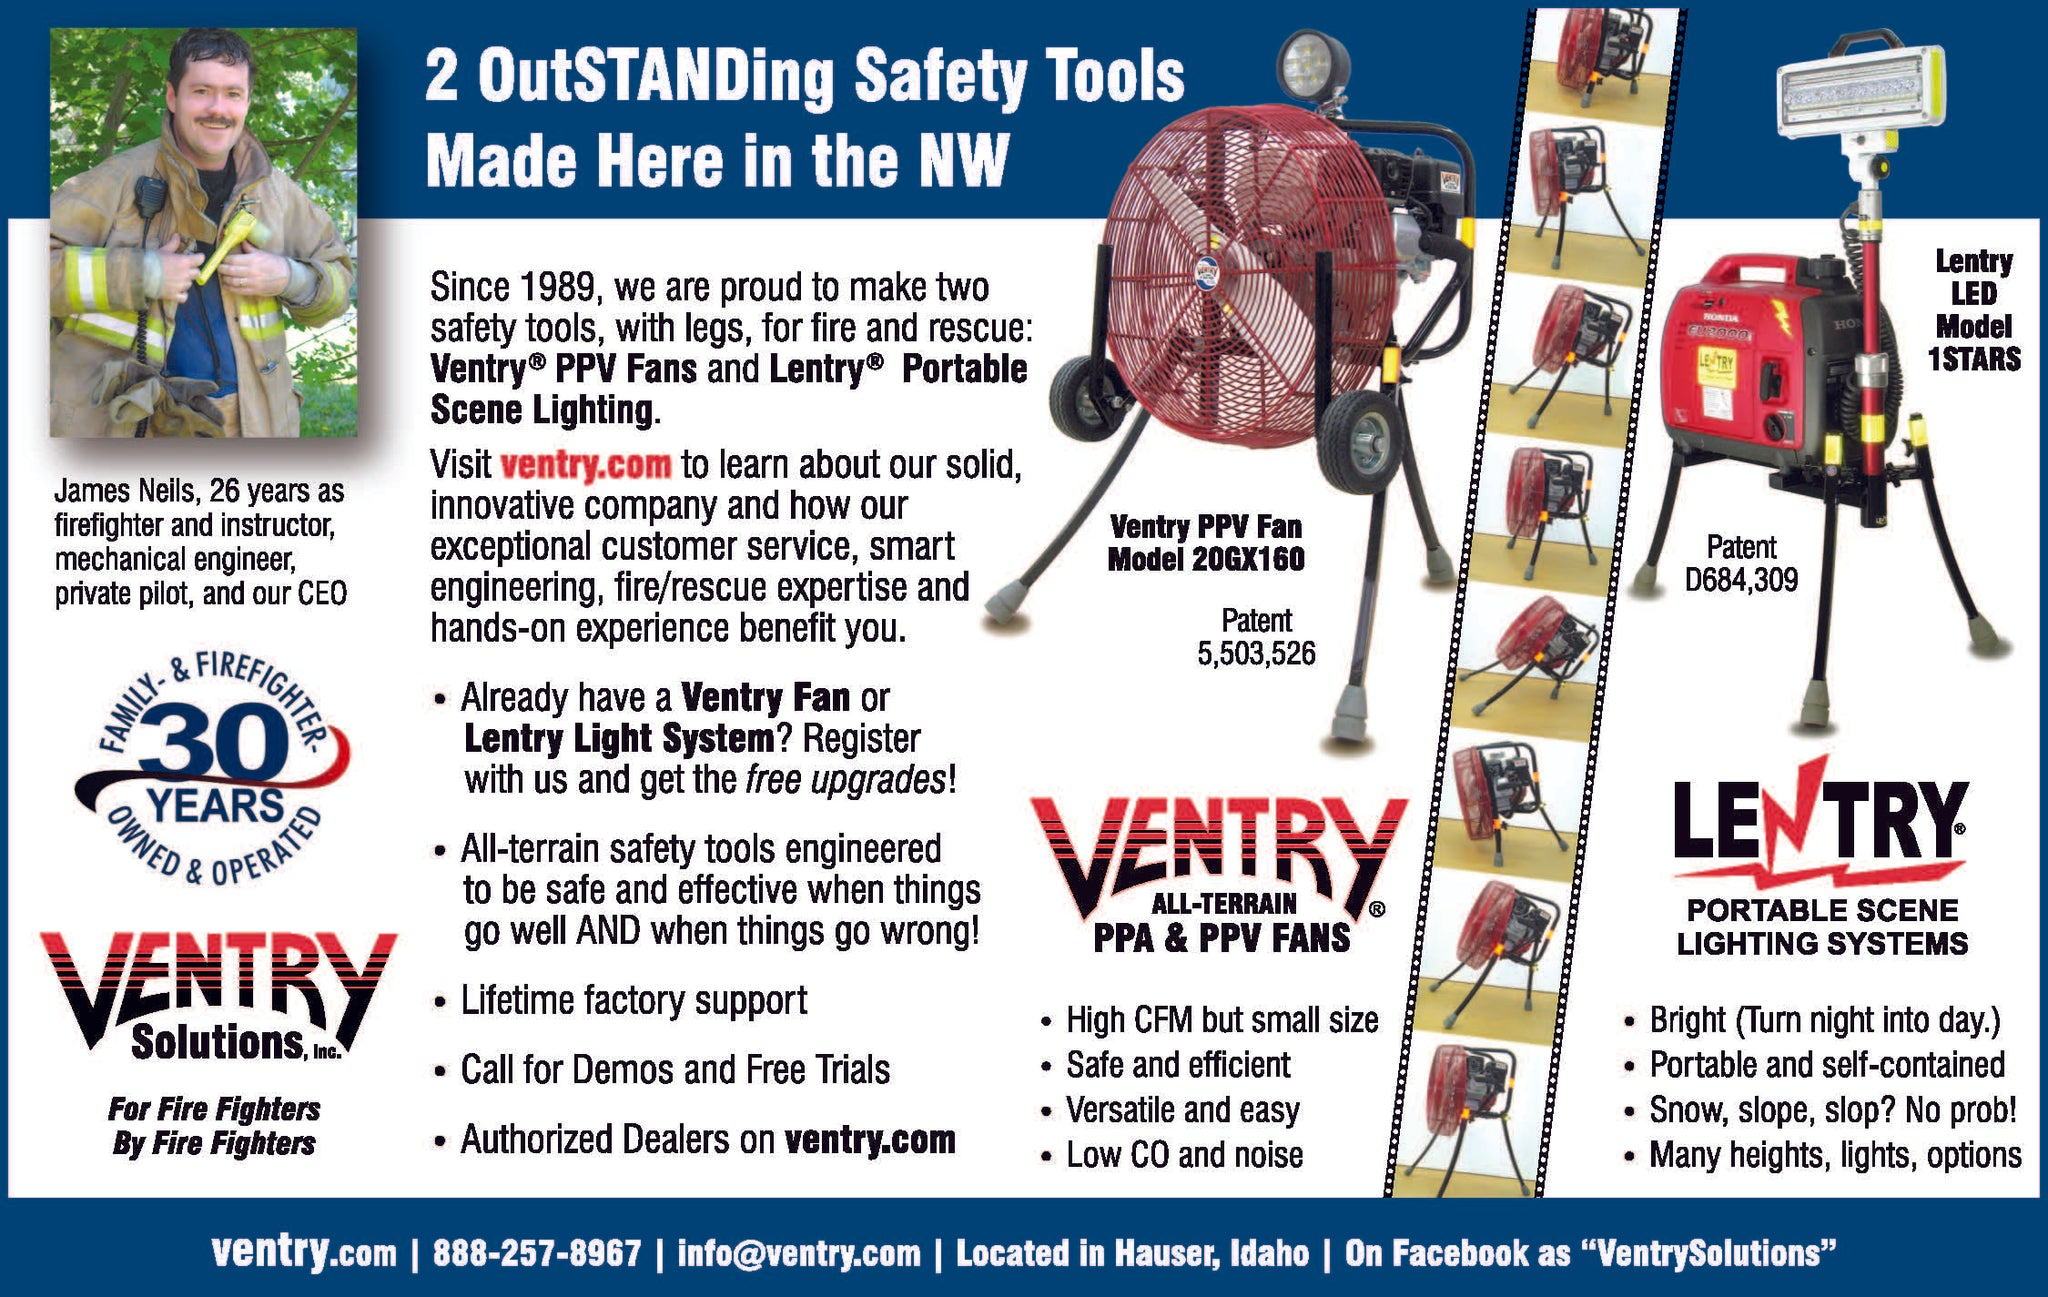 Two outSTANDing safety tools made in the NW